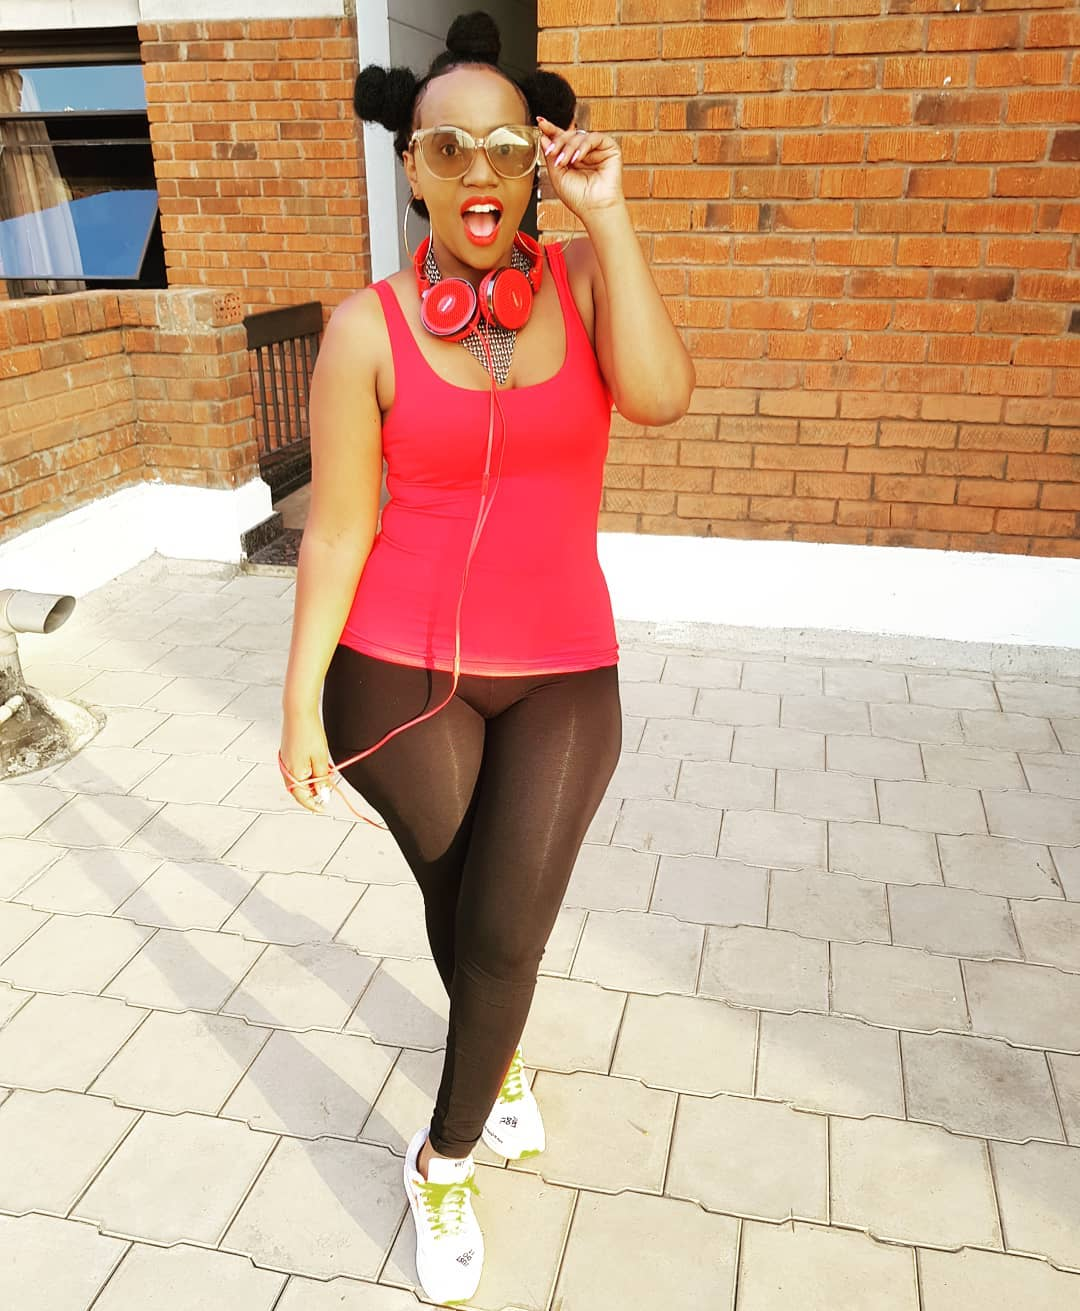 pierra makena4 - I don't want any more kids, says mum-of-1 Pierra Makena